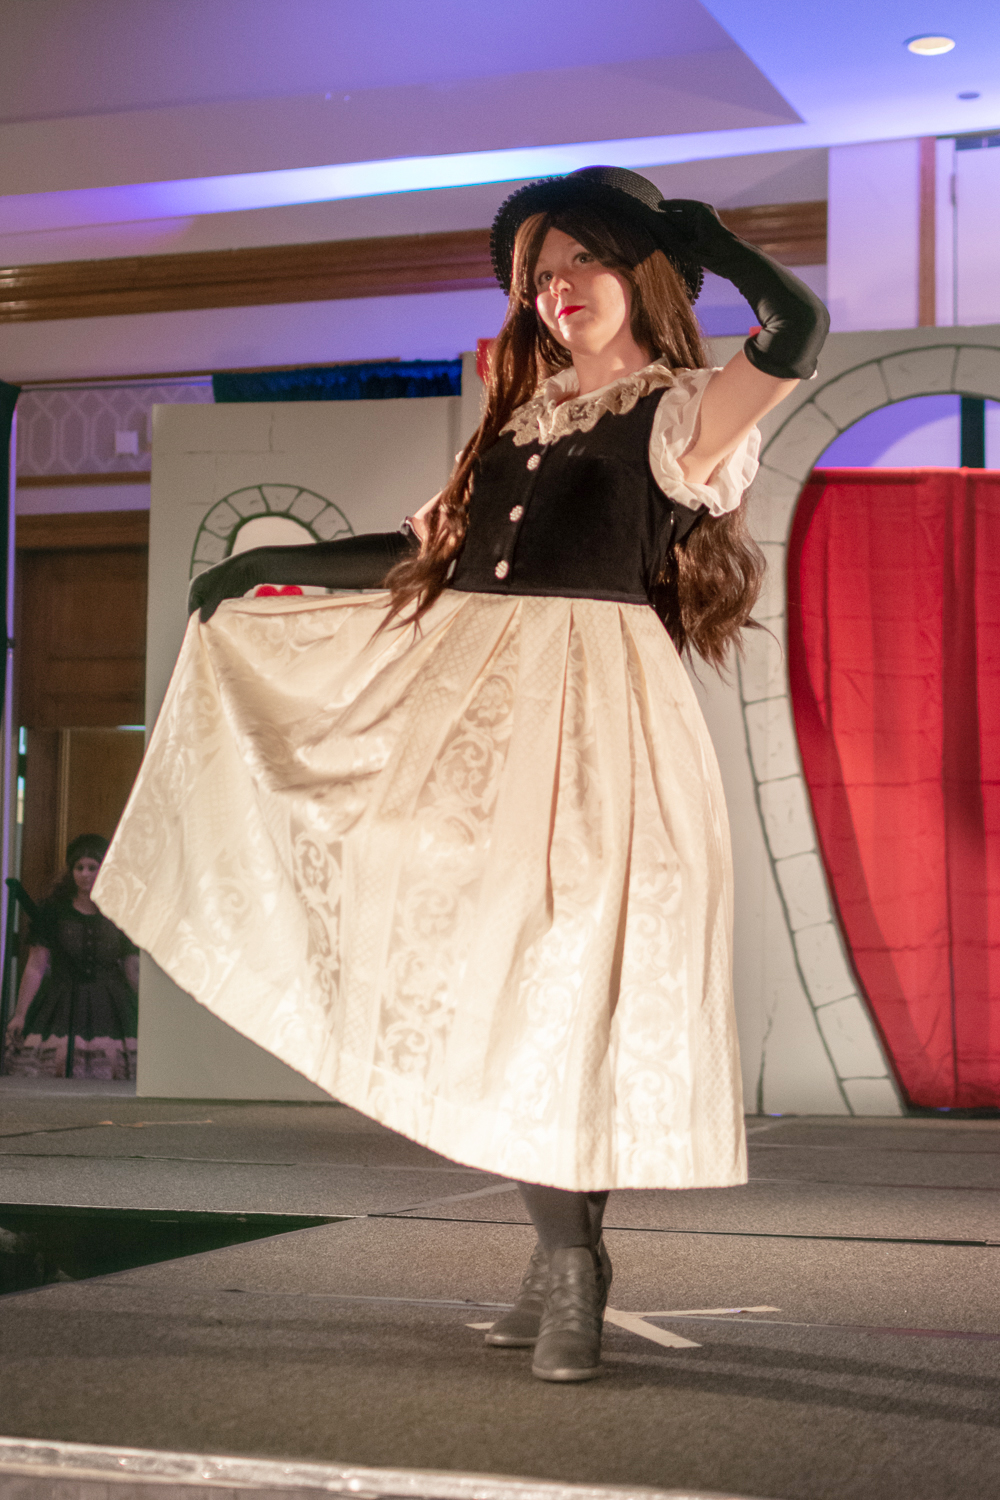 deltahcon2018_fashion show-25.jpg